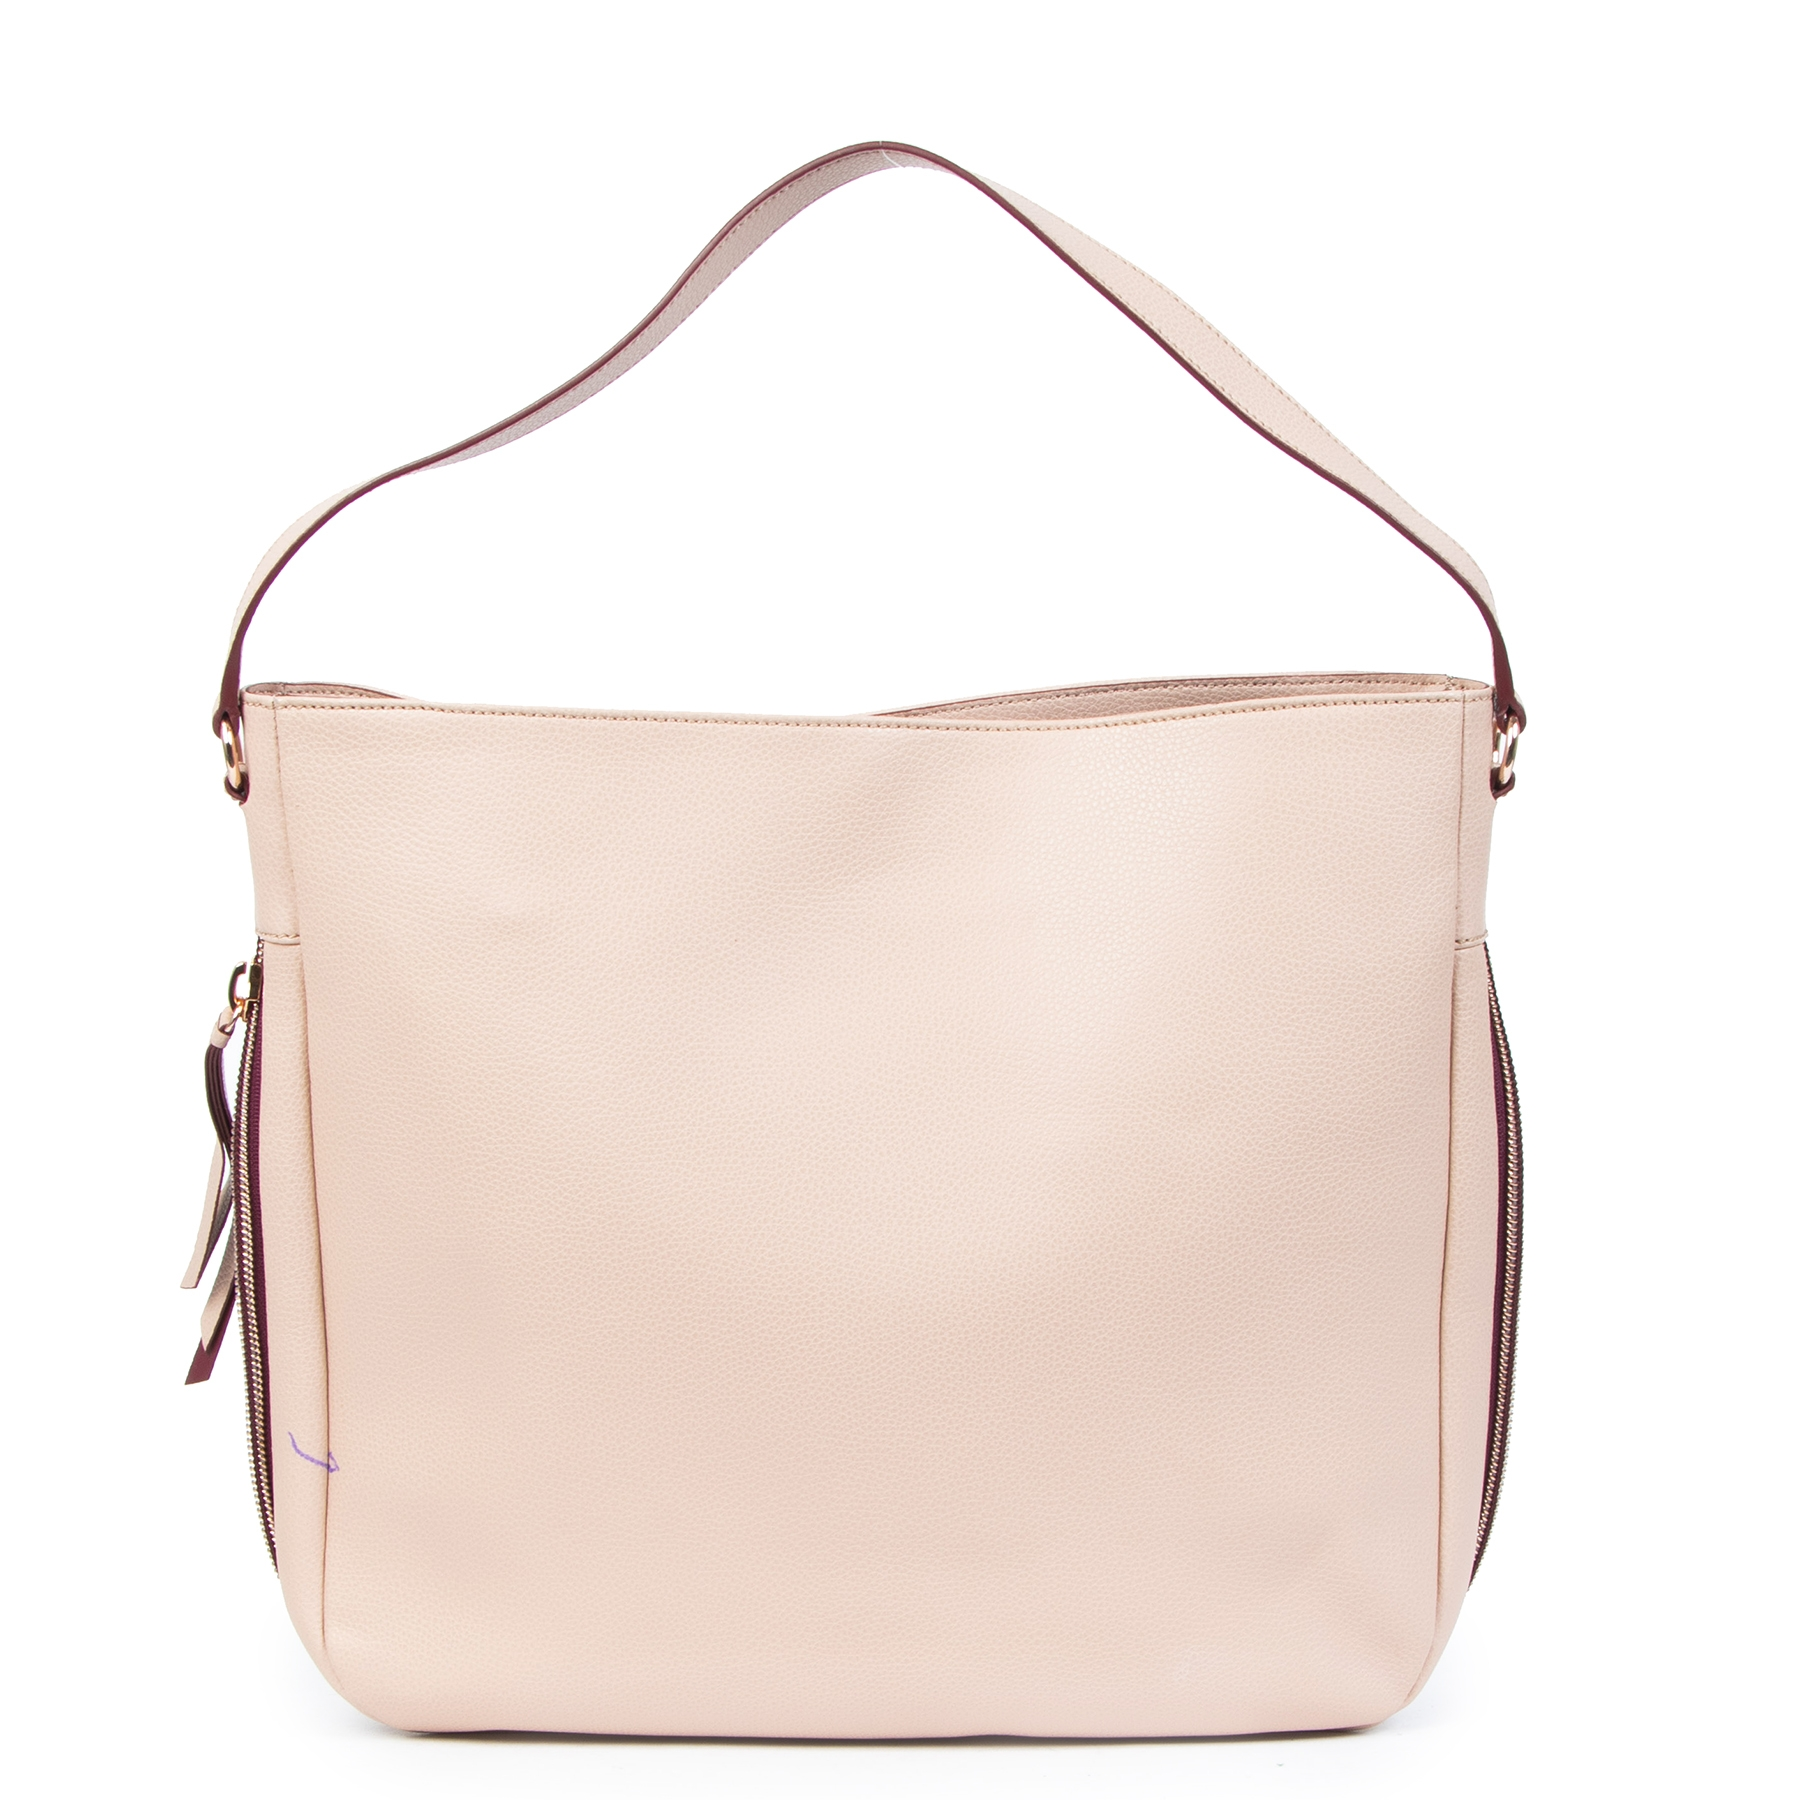 acheter en ligne seconde main Hogan Dusty Pink Zipper Tote